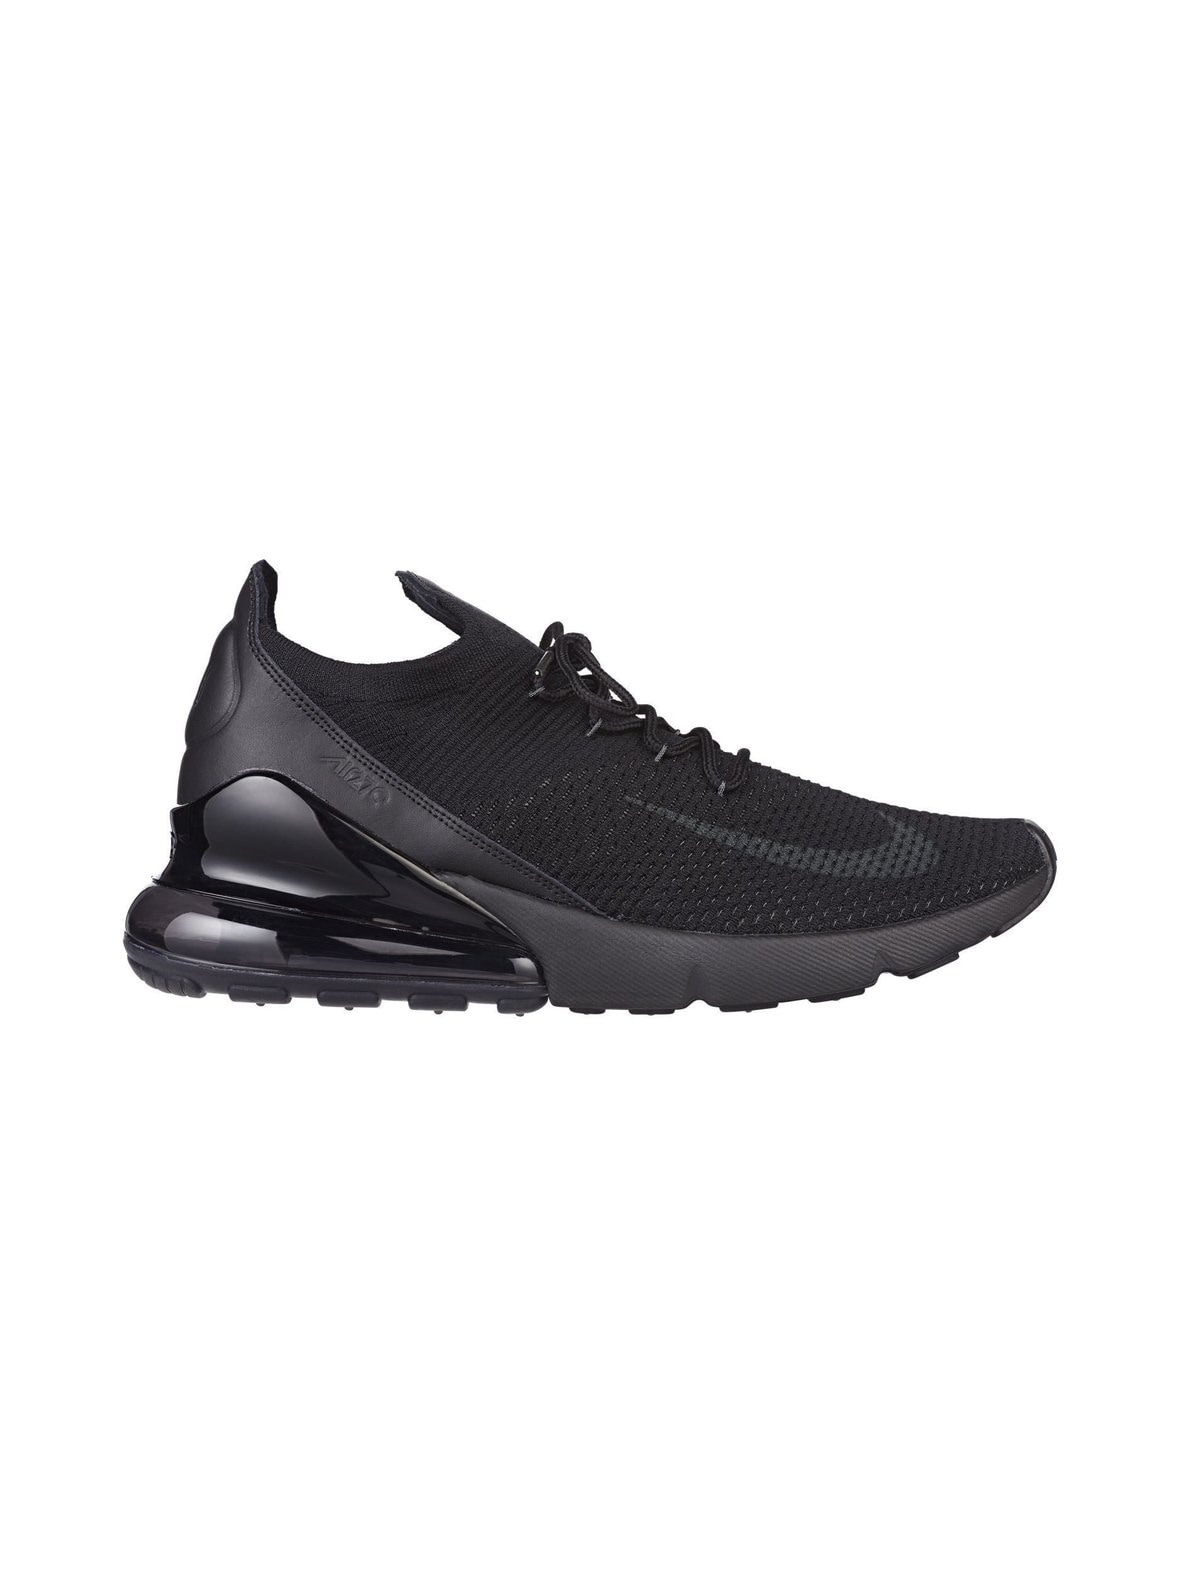 Black Anthracite (musta) Nike M Air Max 270 Flyknit -sneakerit ... f3900a6252